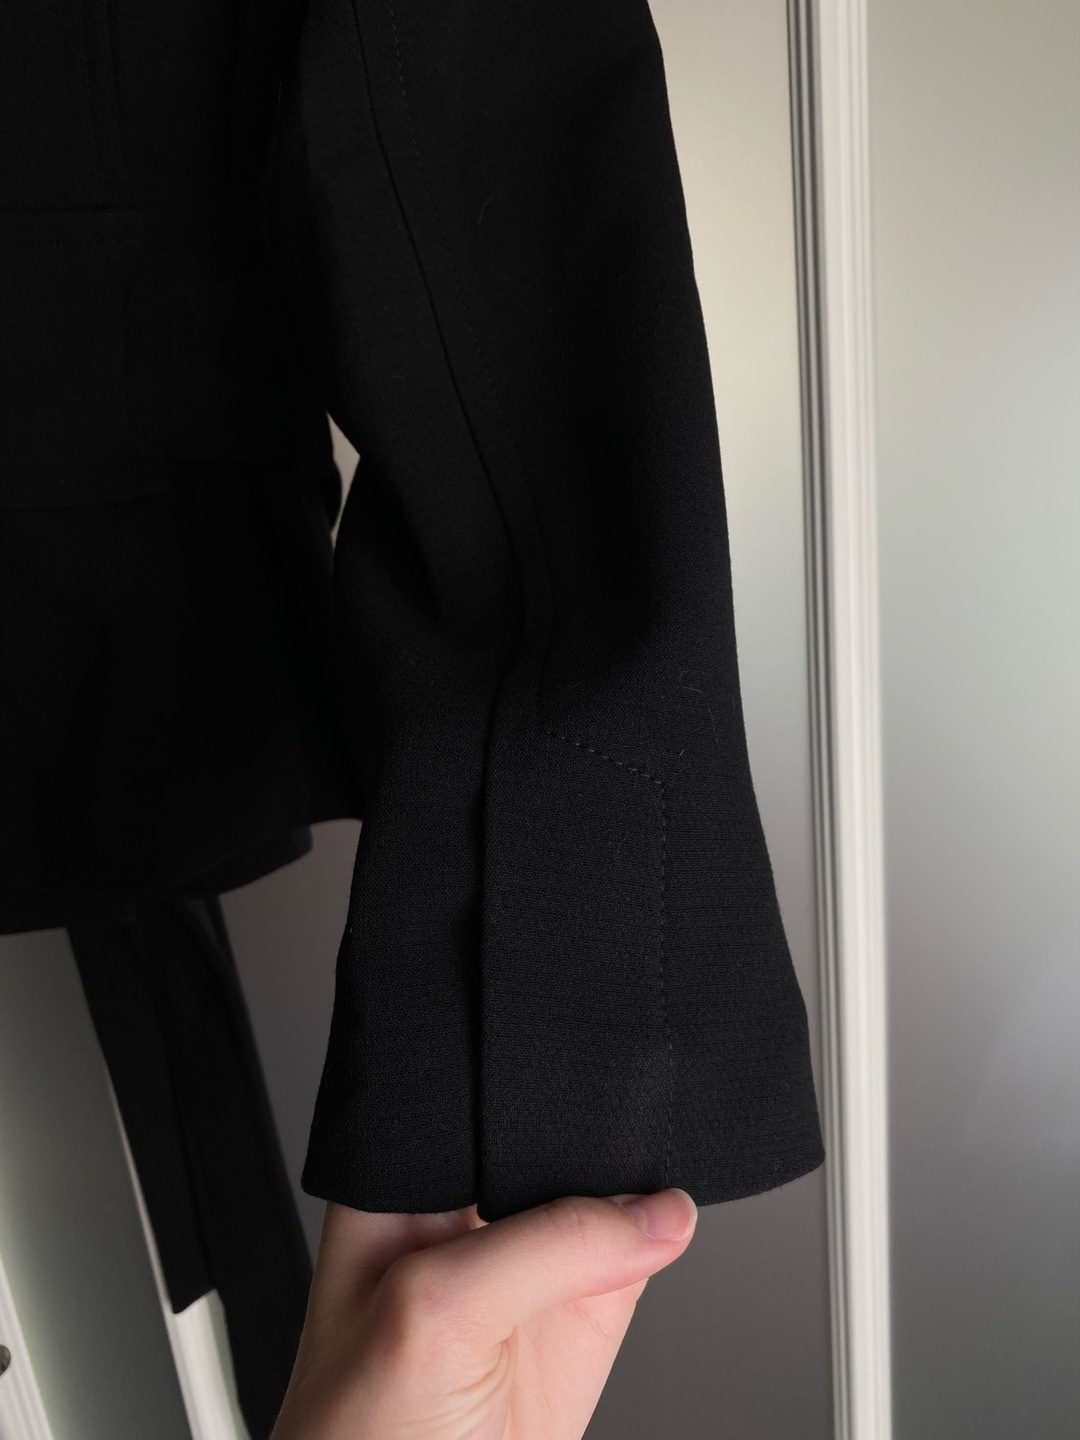 Women's blazers & suits - ZARA photo 3